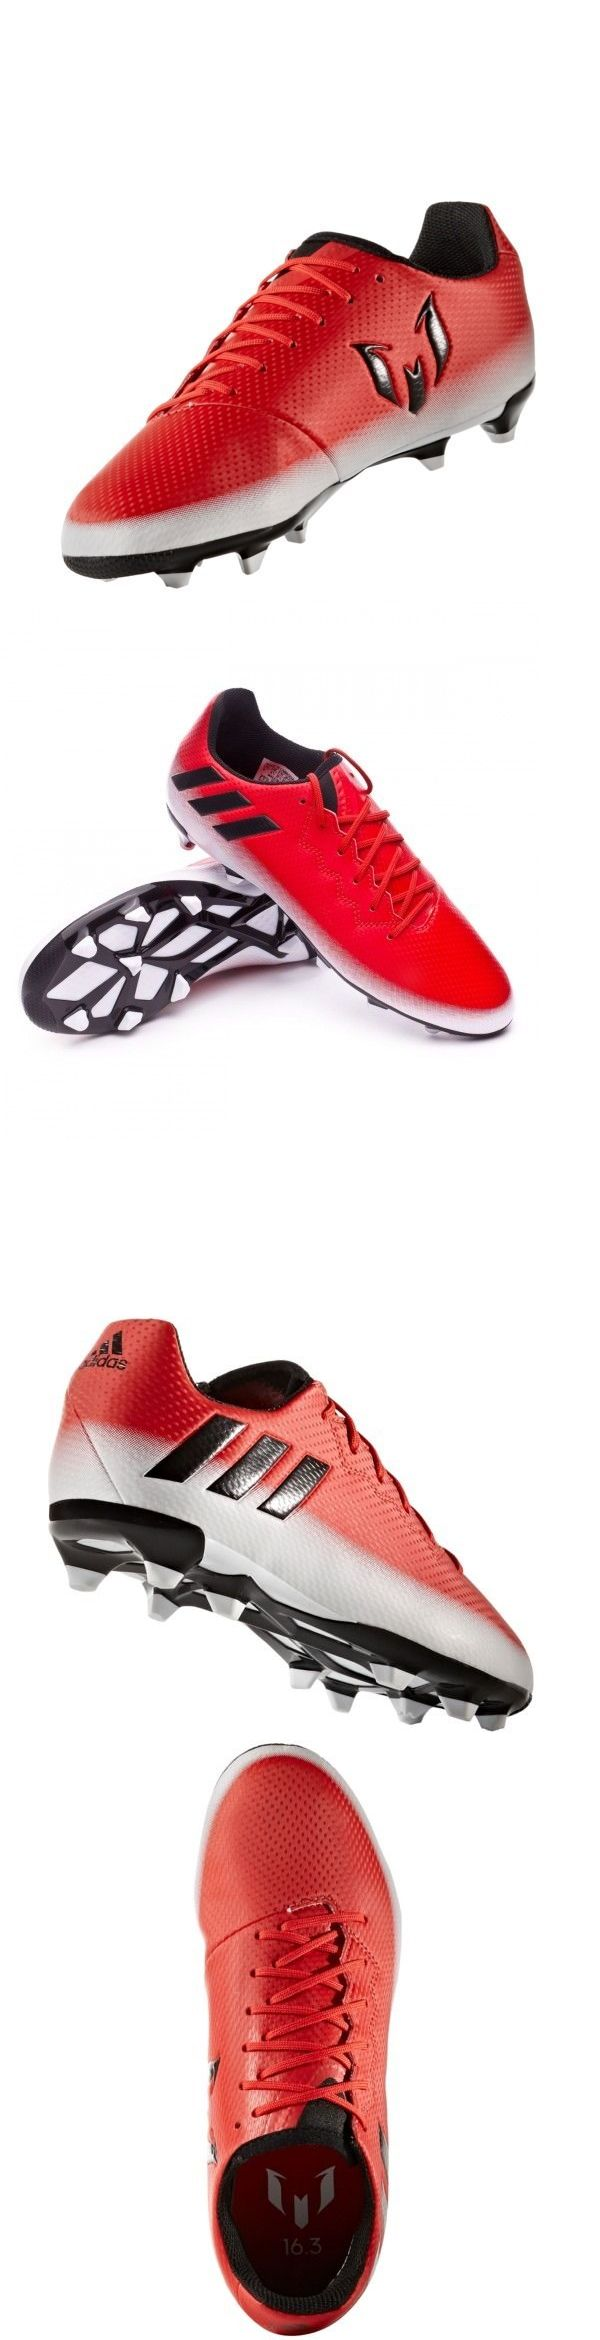 Youth 159177: Adidas 2016 Messi 16.3 Fg Junior Soccer Cleats Shoes Kids Youth Red -> BUY IT NOW ONLY: $48 on eBay!